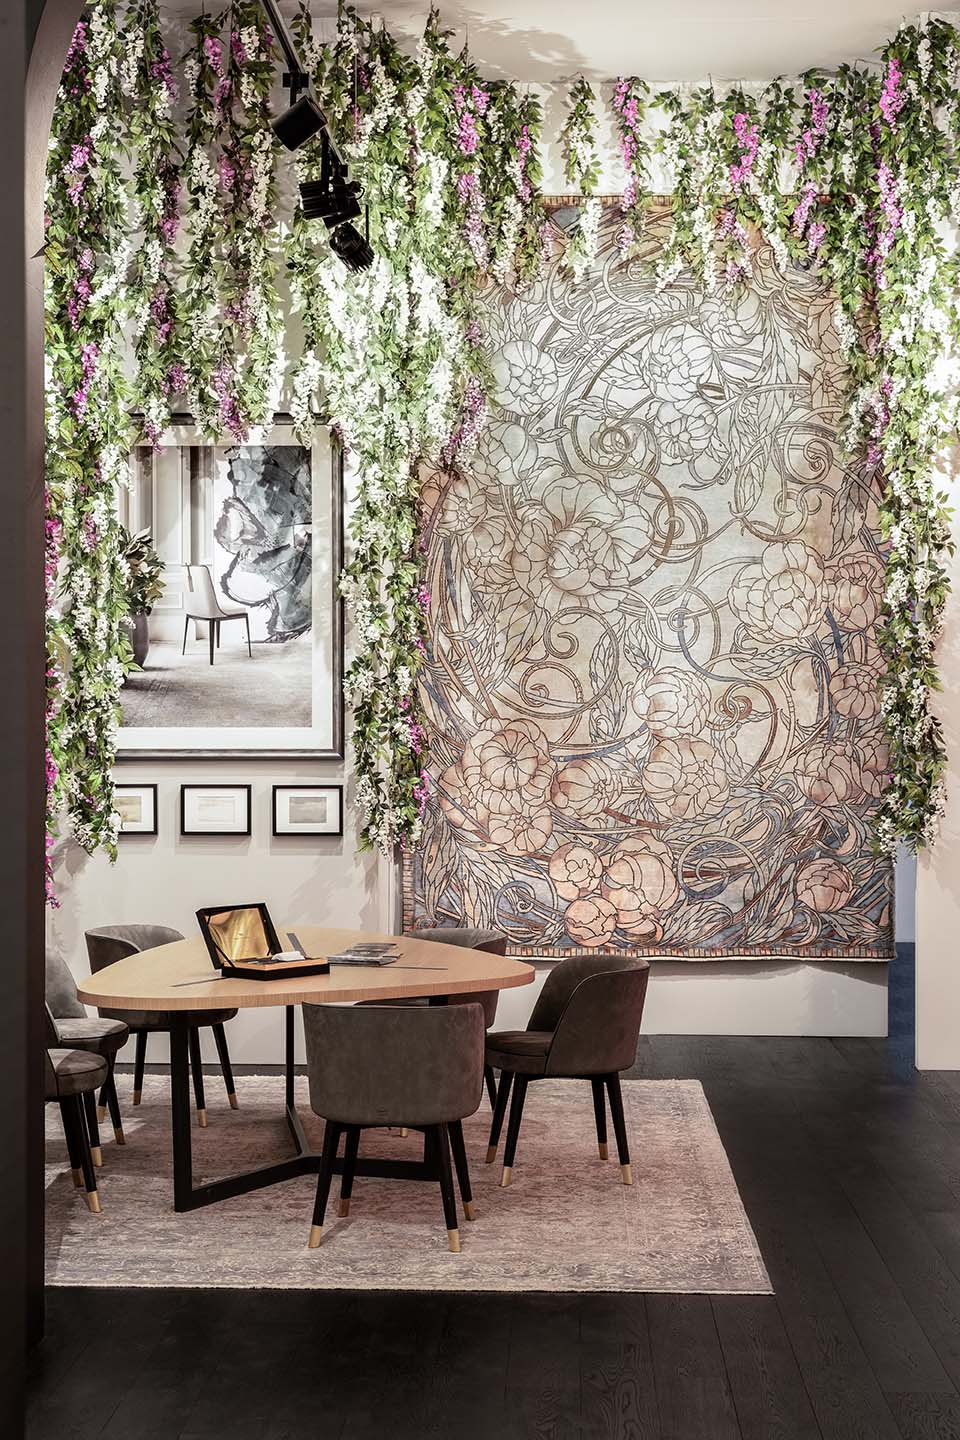 Top London designer's Milan showcase decorated with trailing artificial wisteria flowers, foliage and lush greenery